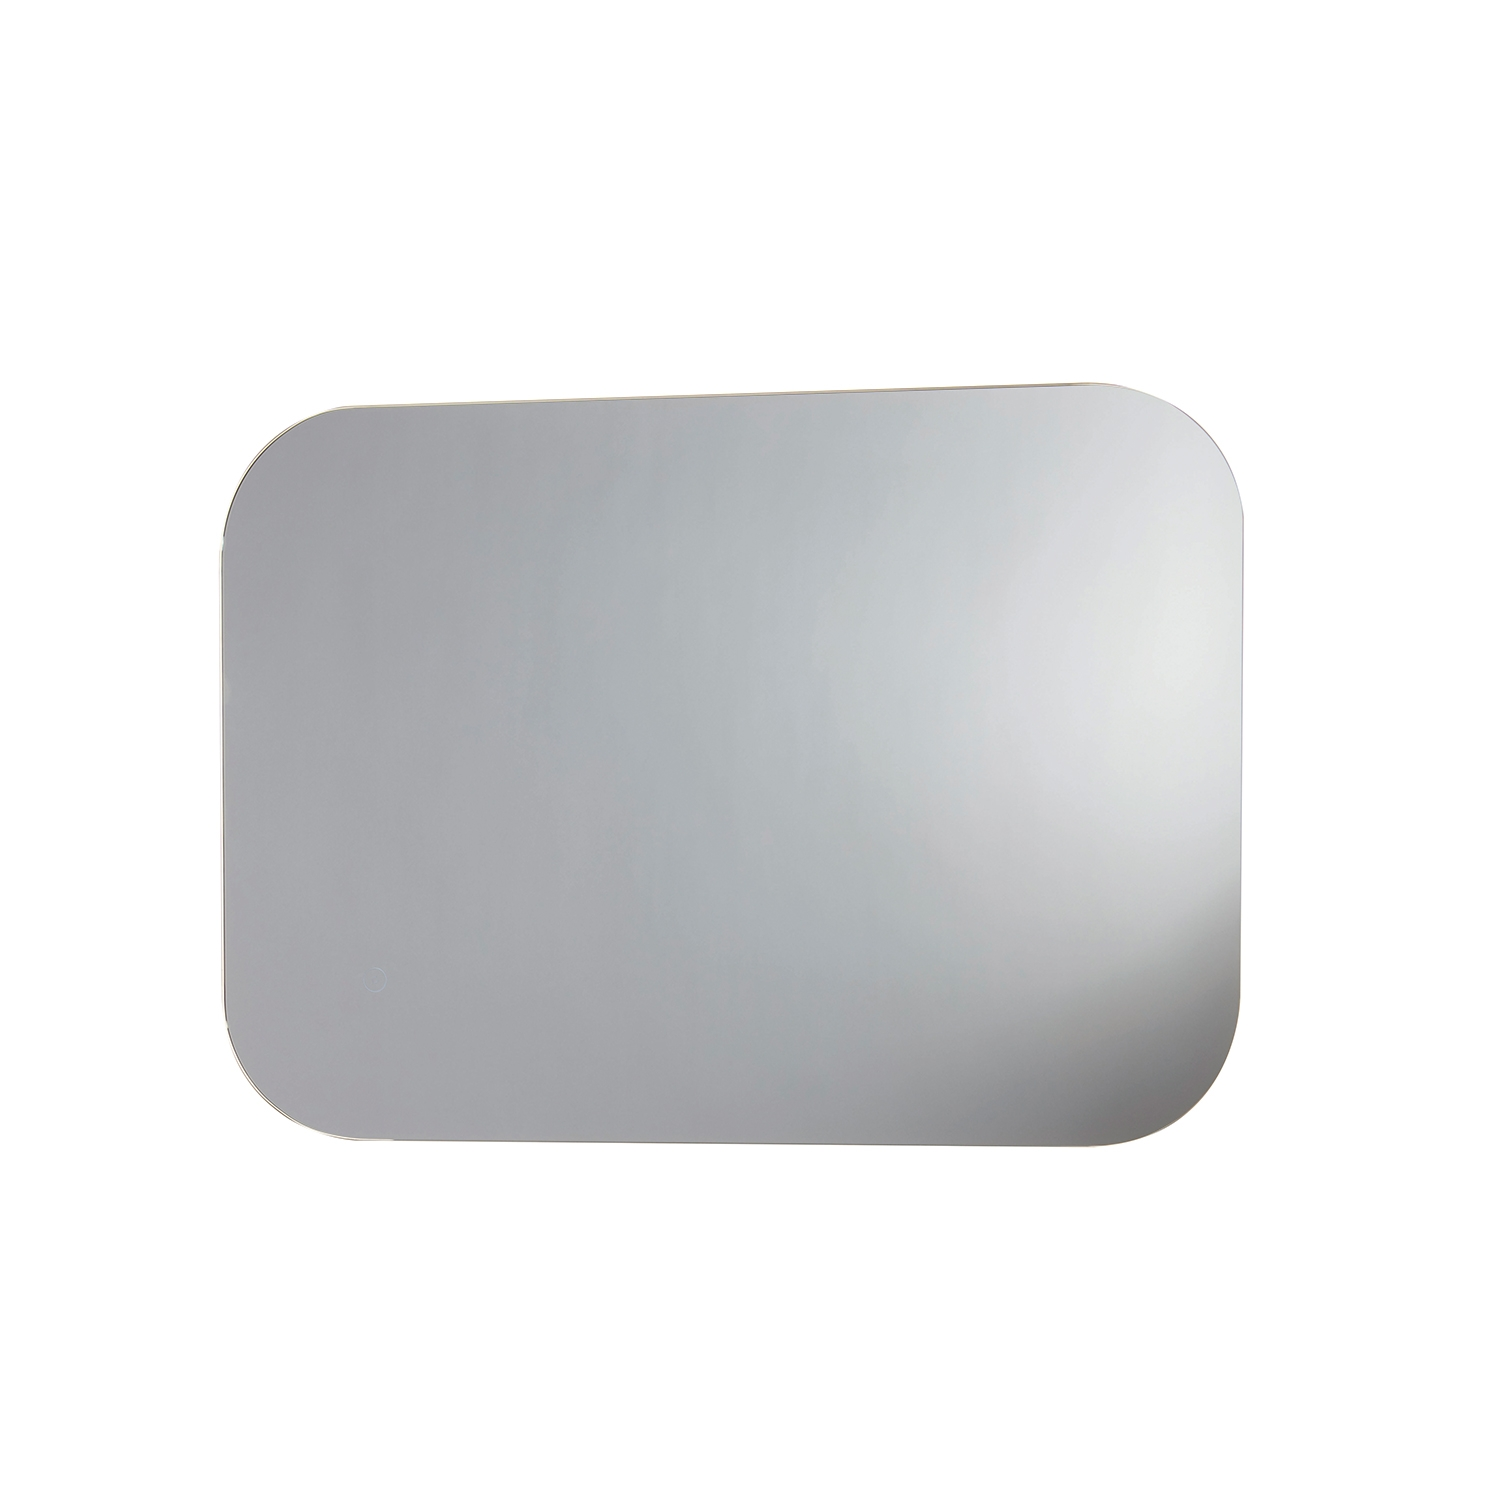 Orbit Aura LED Bathroom Mirror with Demister Pad and Shaver Socket 700mm H x 500mm W